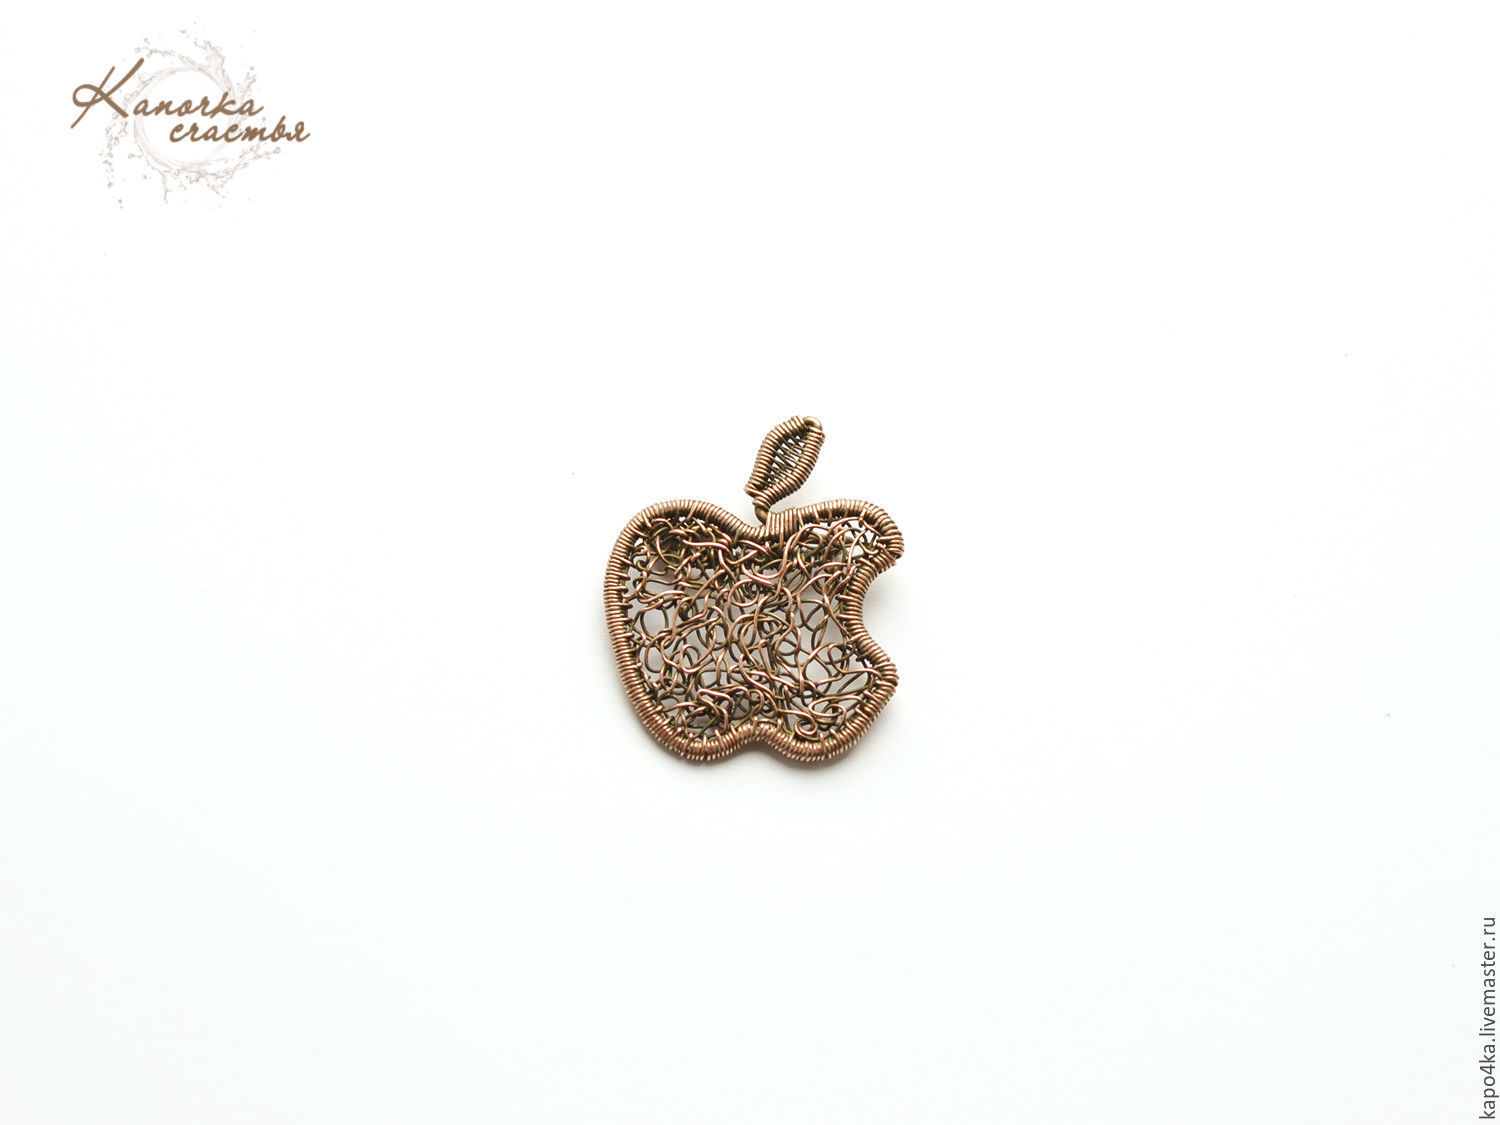 Brooch copper Apple Apple. Buy wire wrap brooch, copper brooch, copper brooch, copper brooch Apple, small brooch, brooch with Apple logo. Designer jewelry handmade.